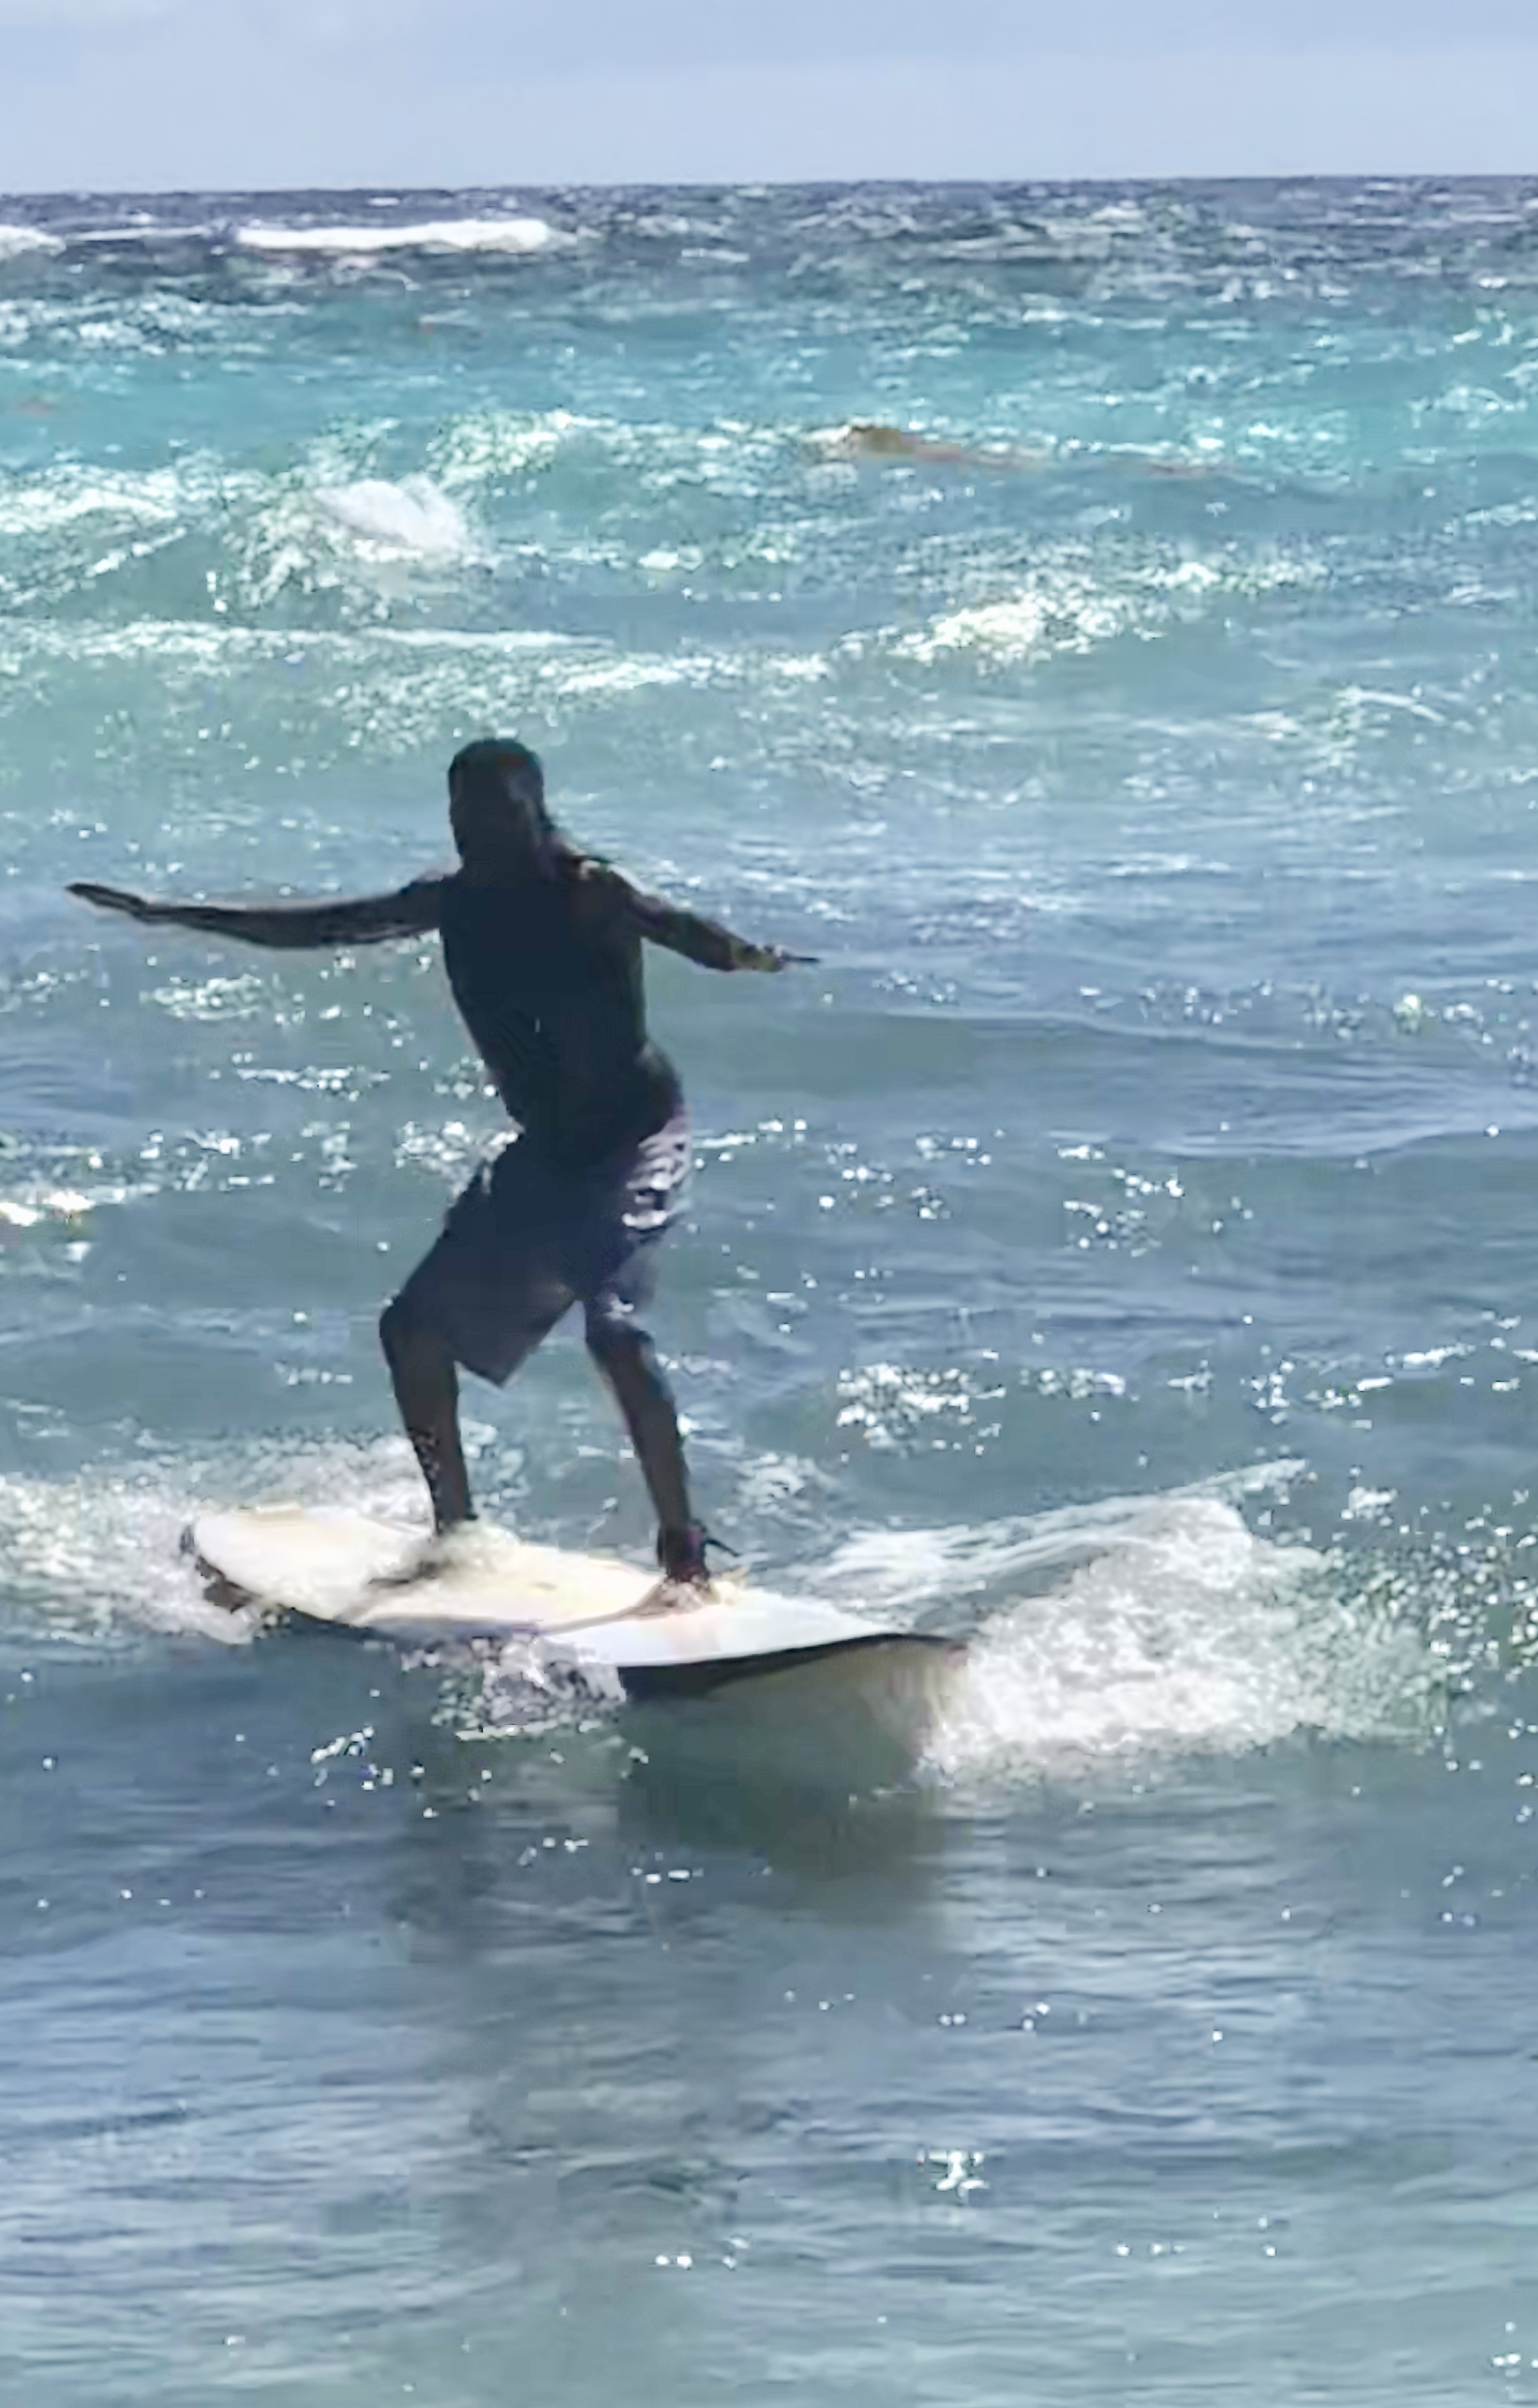 Reno Omokri Surfing in Barbados